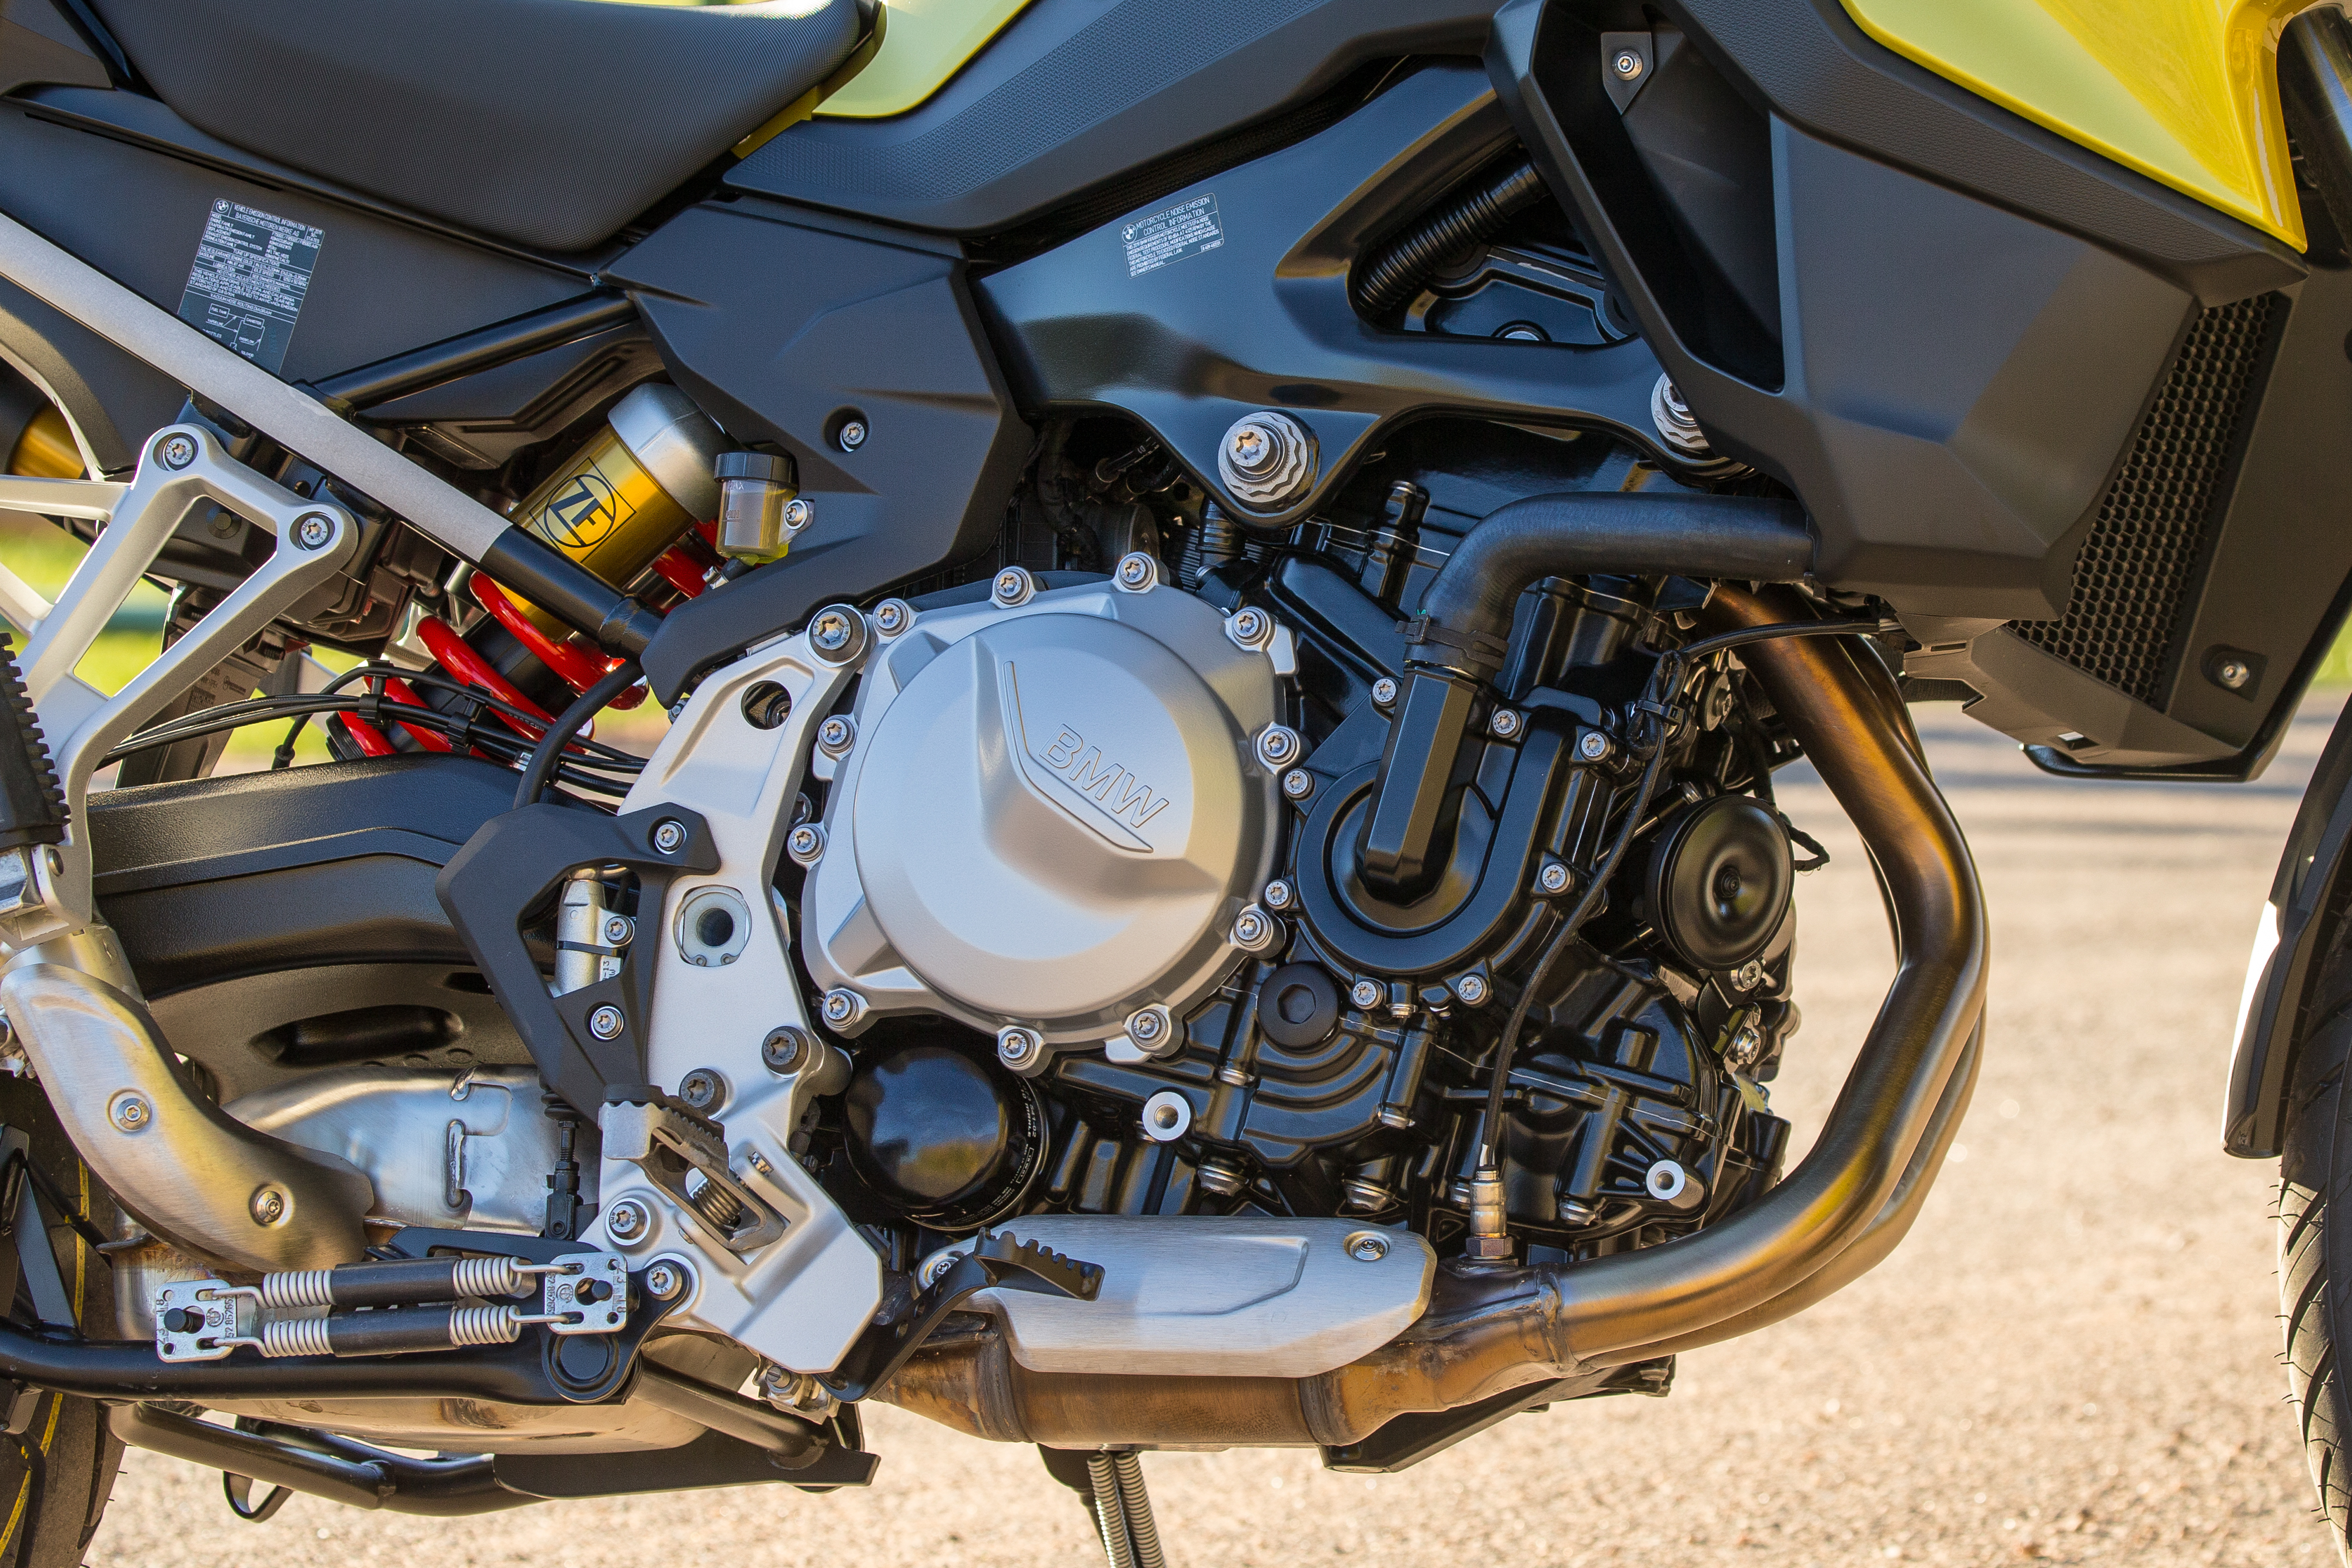 2019 BMW F 750 GS first ride review - RevZilla